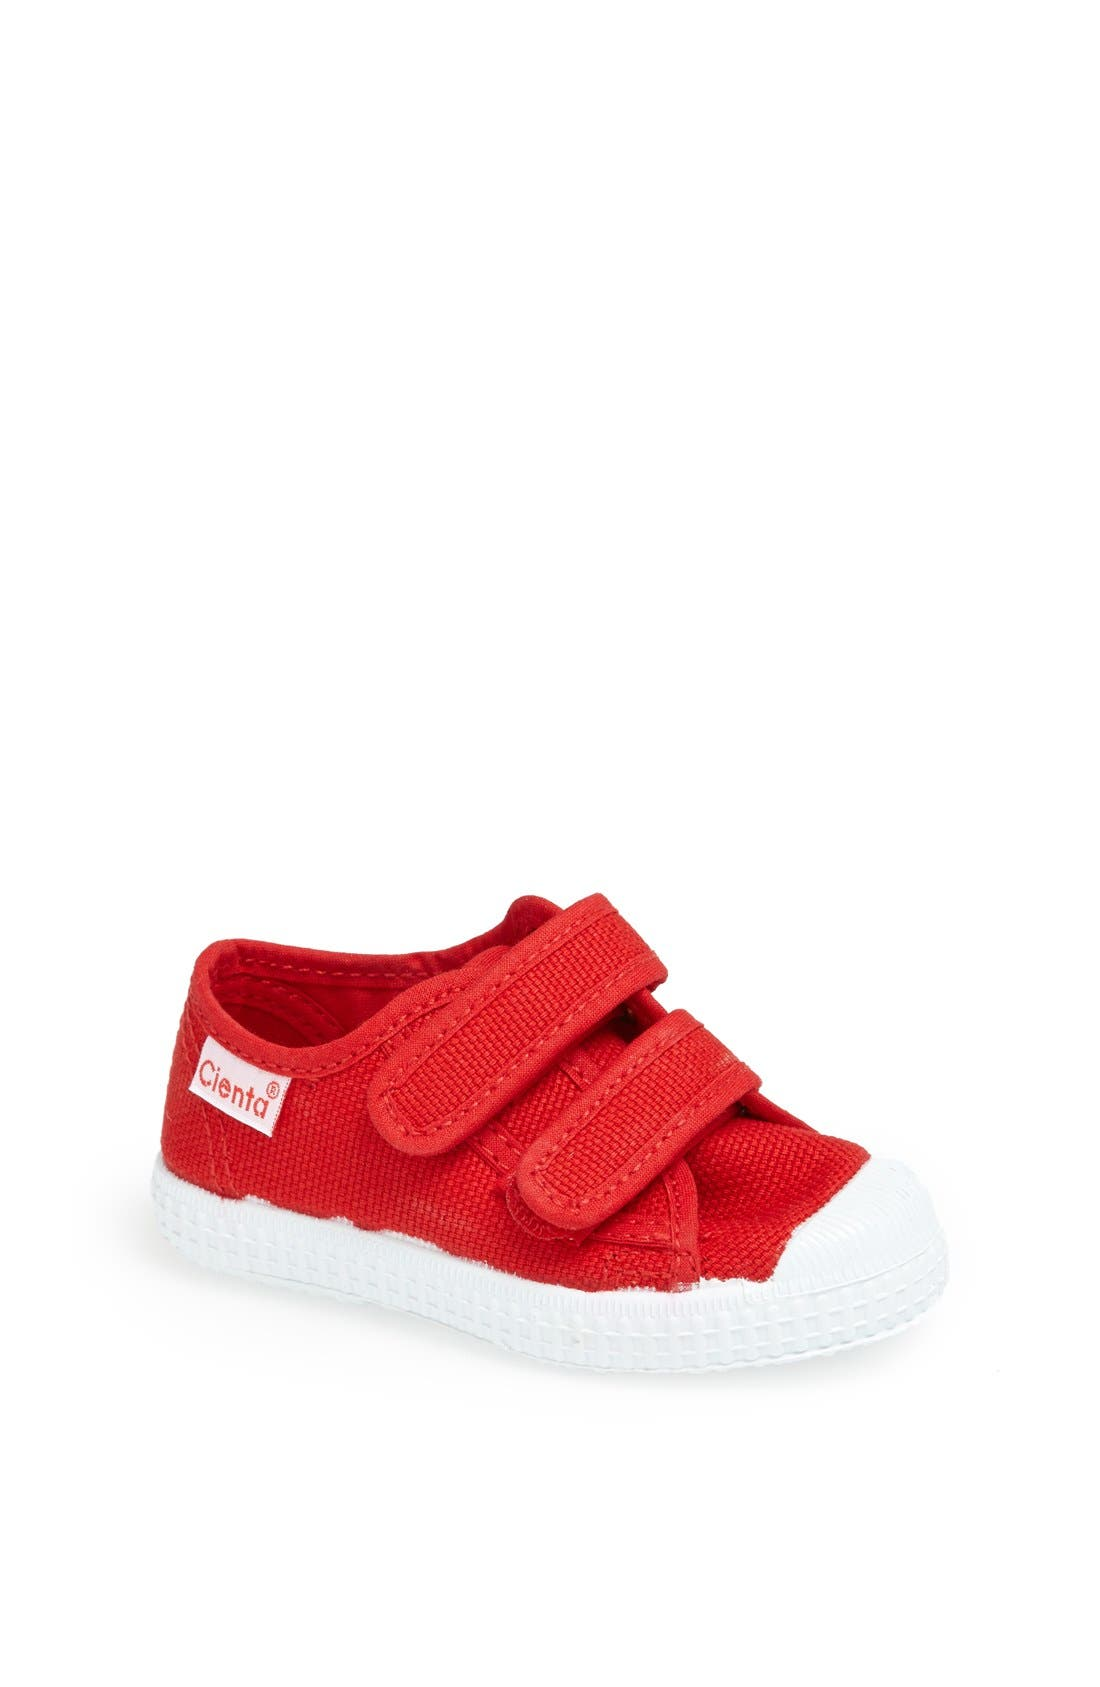 Canvas Sneaker,                             Main thumbnail 1, color,                             Red